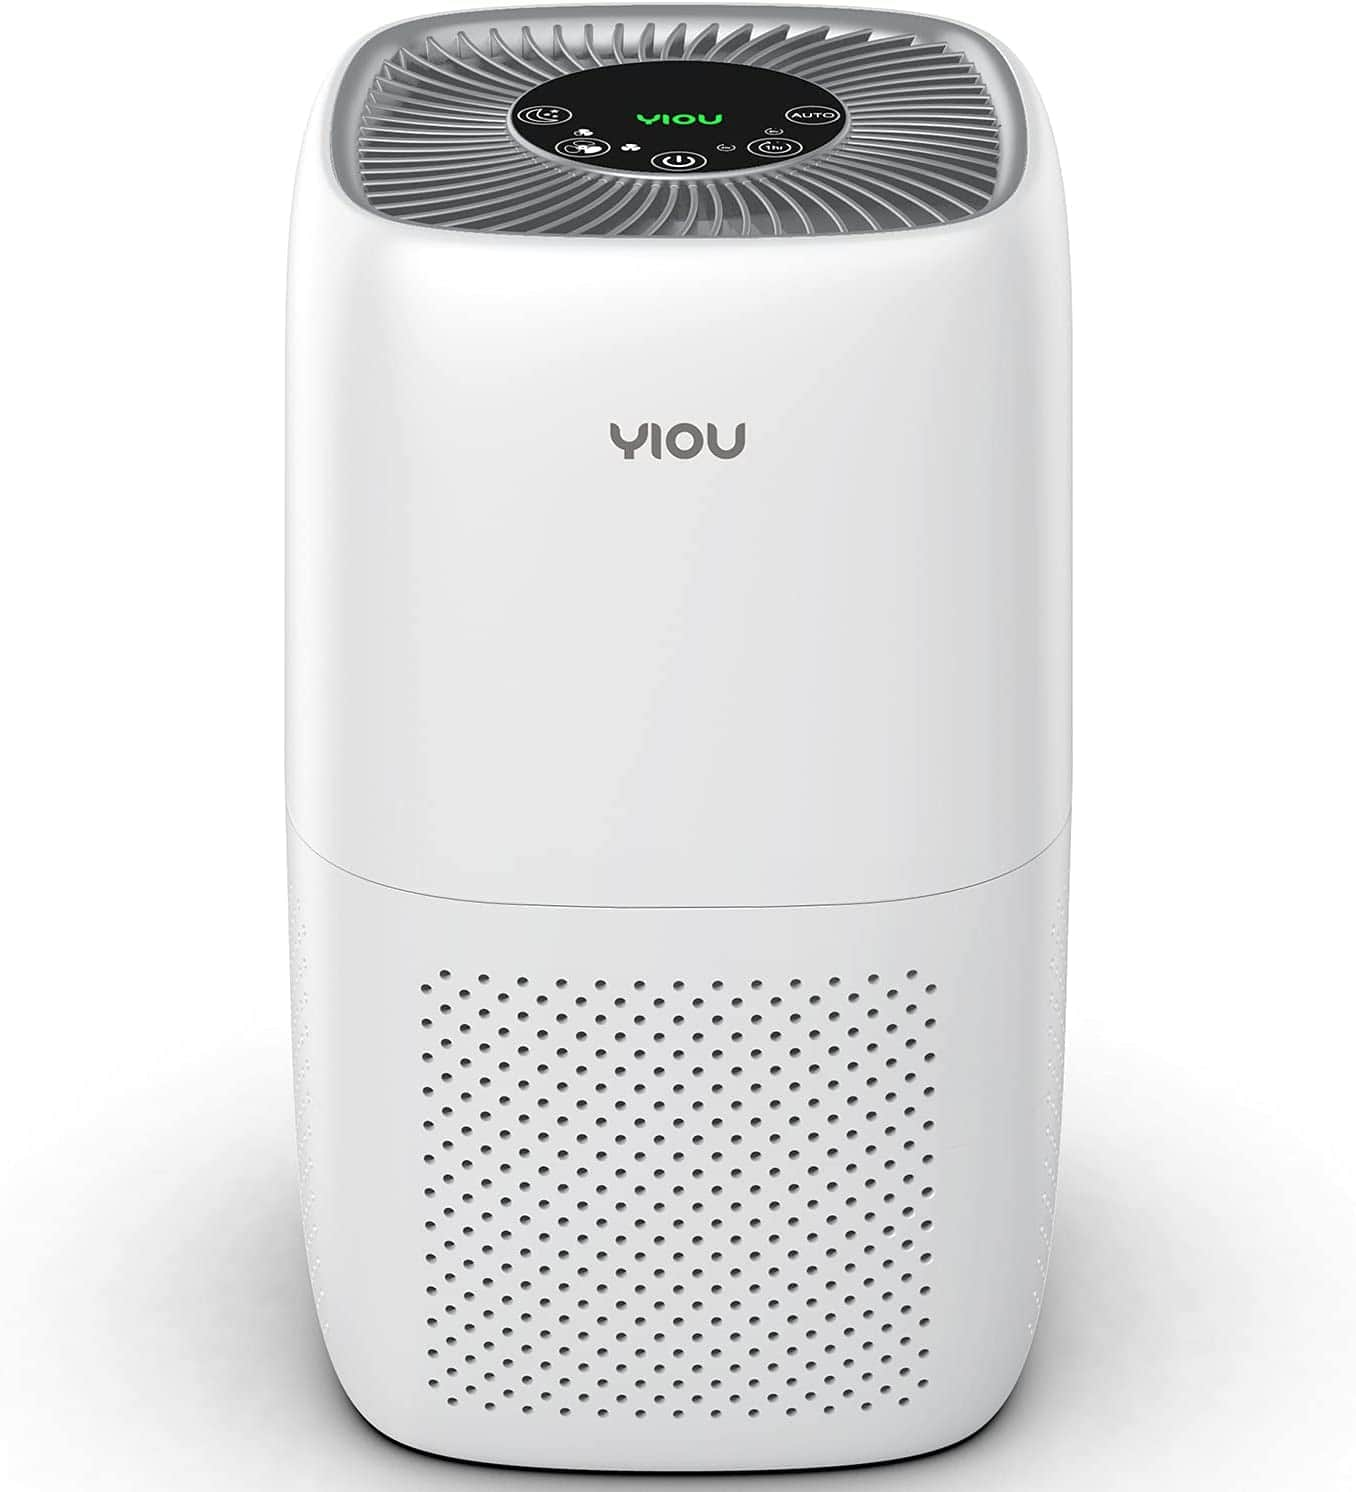 YIOU HEPA S1 Air Purifier H13 True HEPA Filter for $55.99 at Amazon